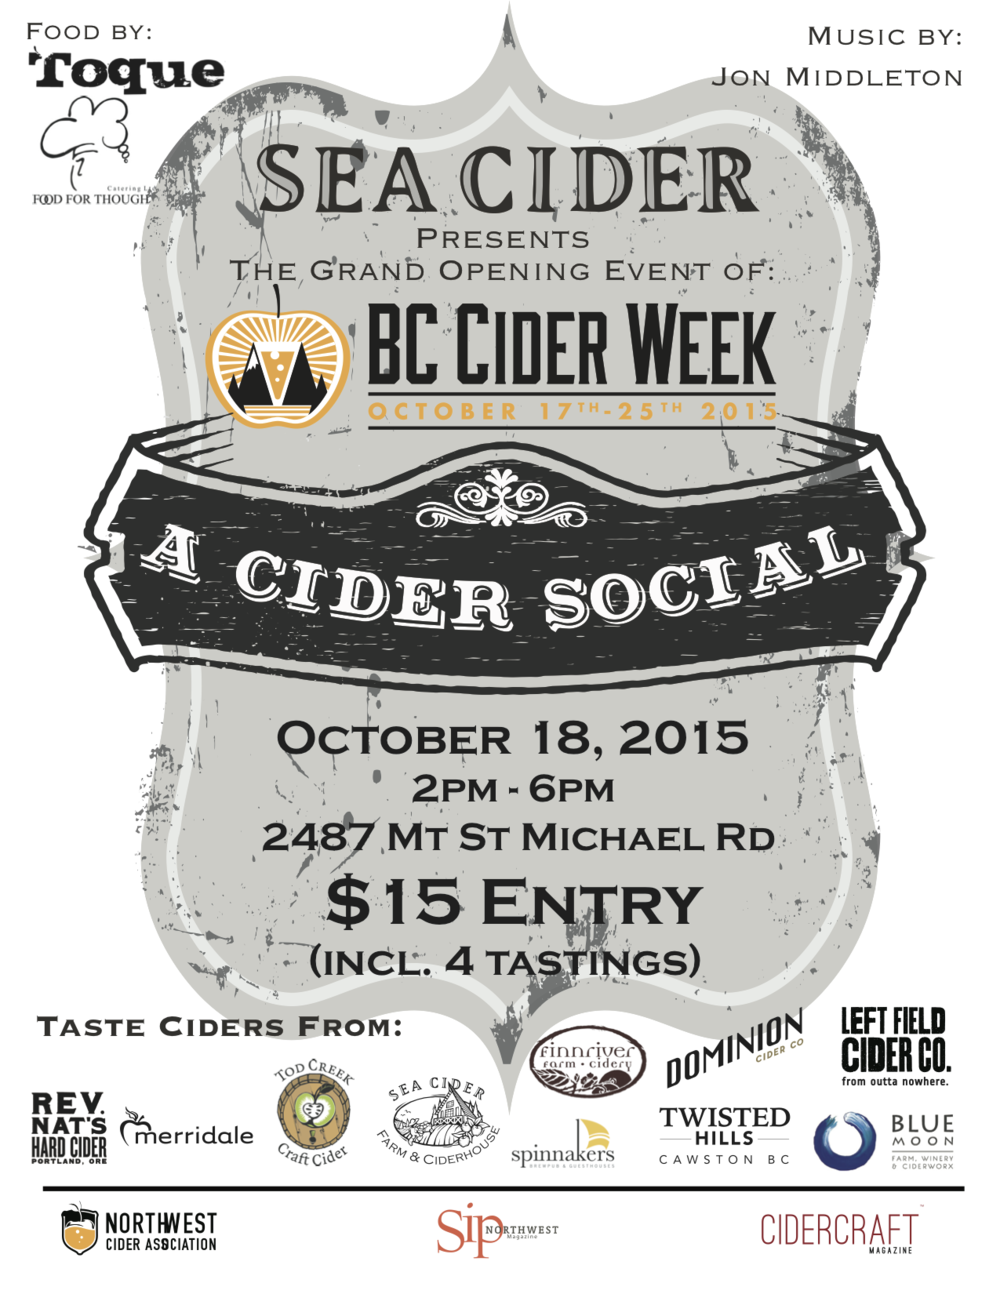 Cider Social Event Poster 11x17.png